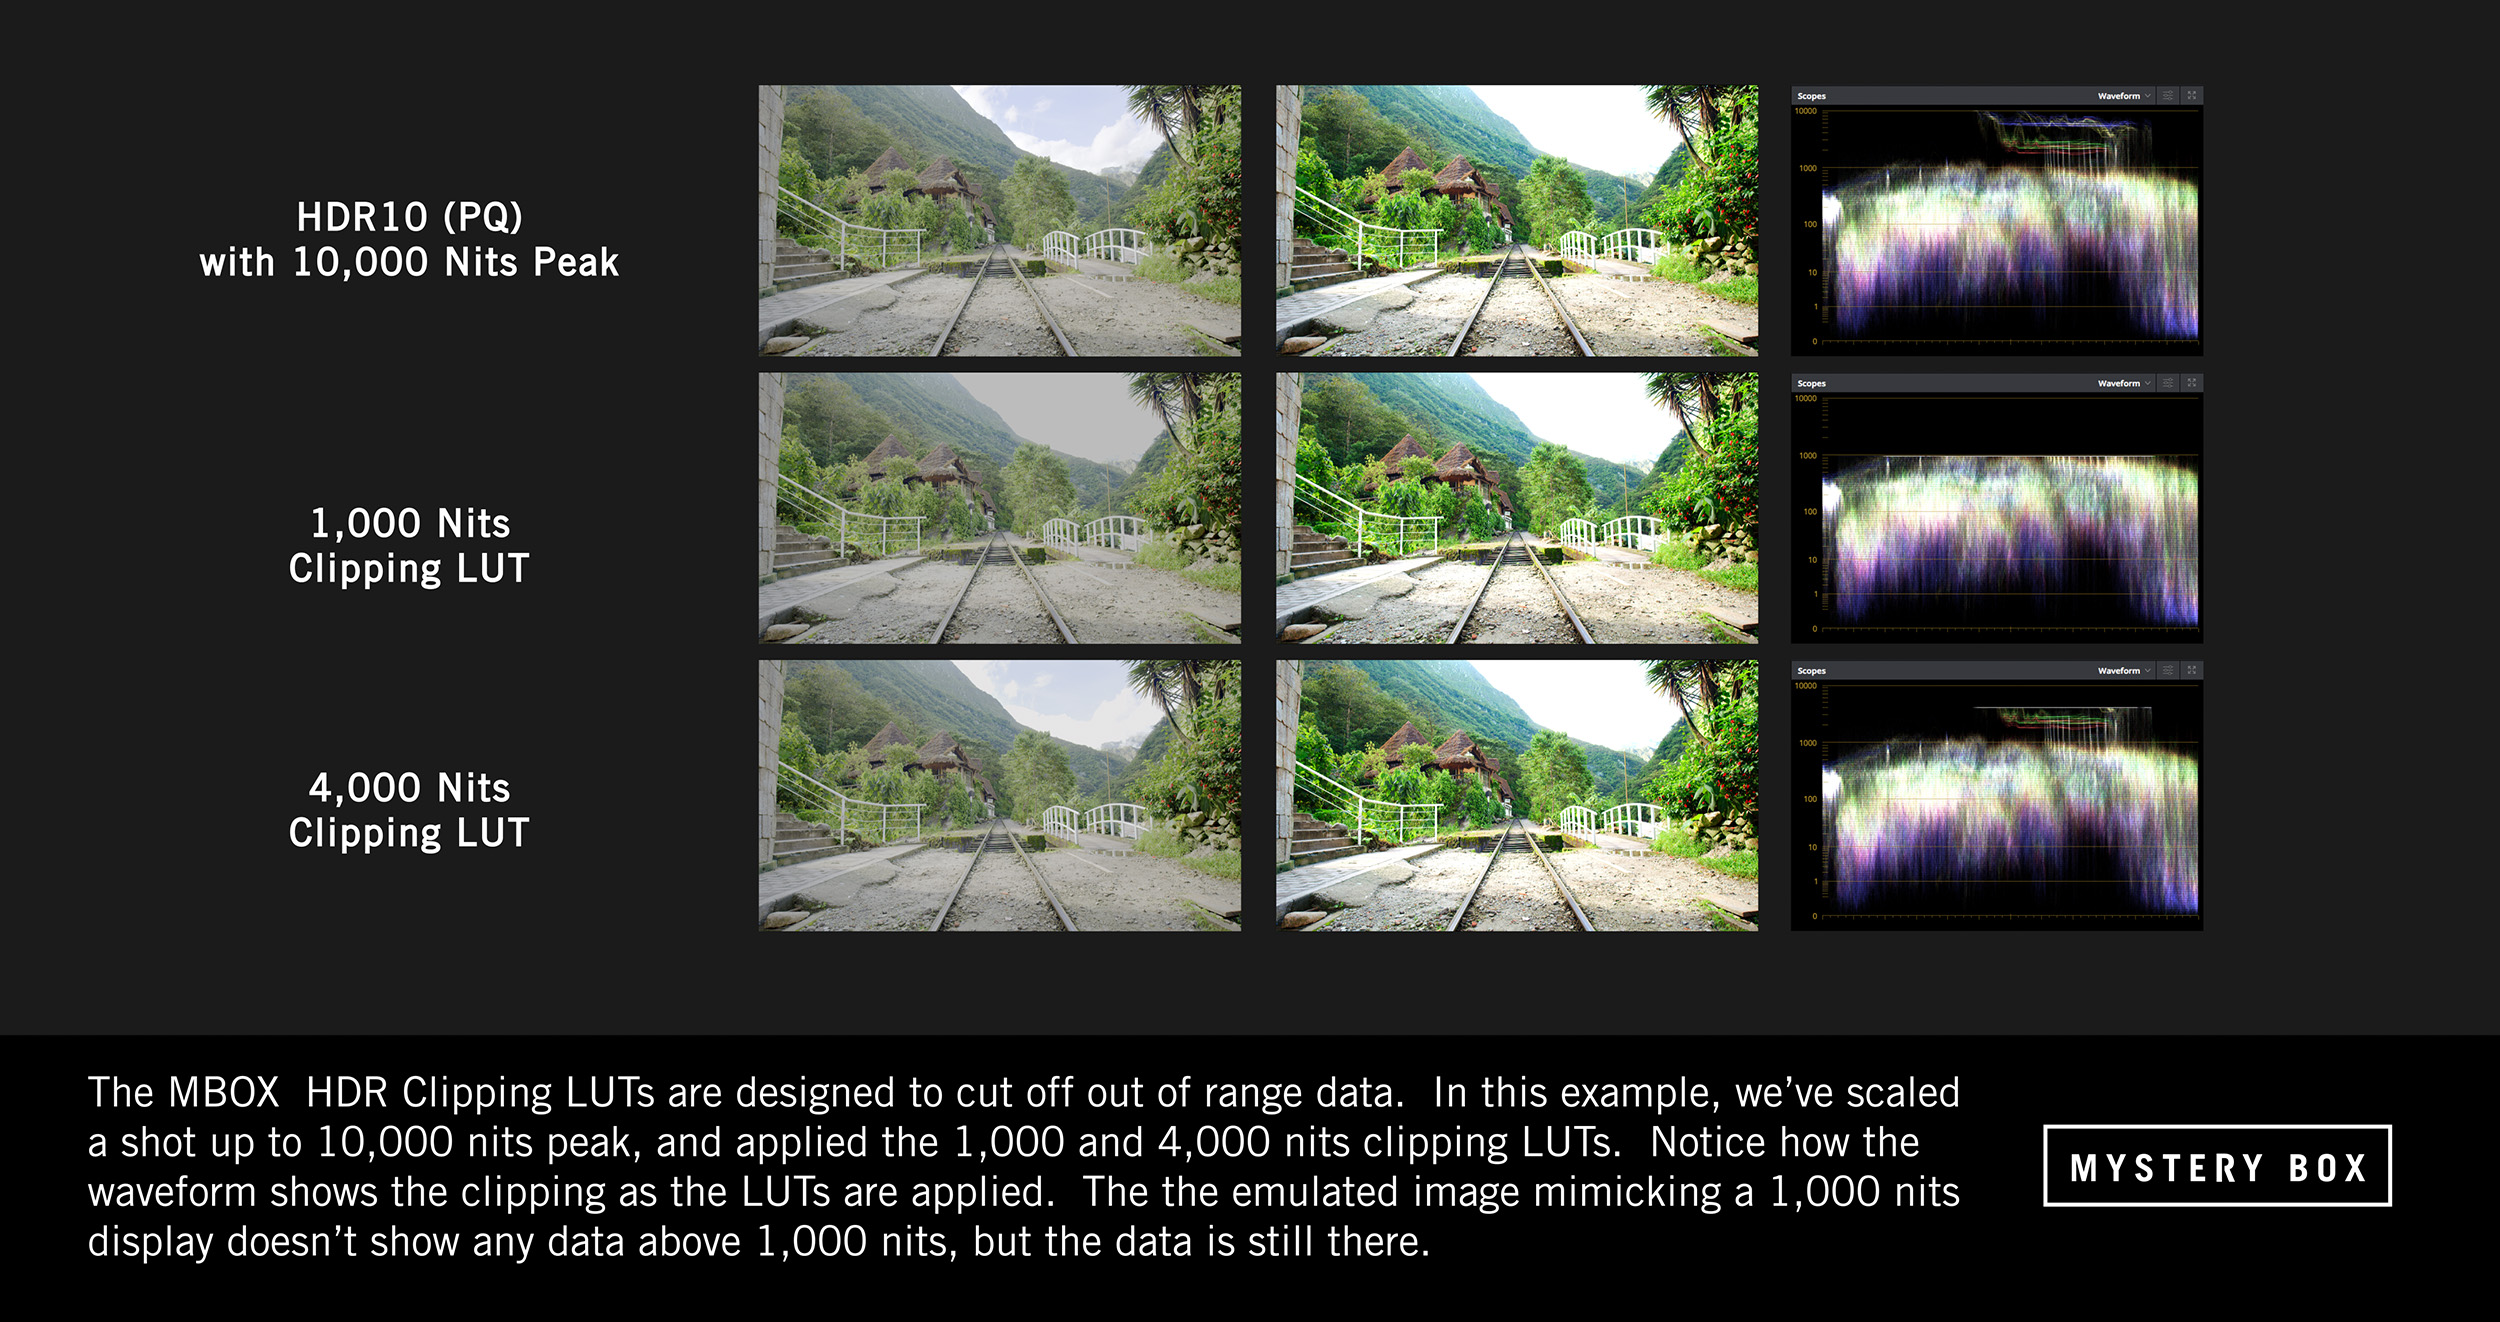 MBOX HDR Clipping LUTs